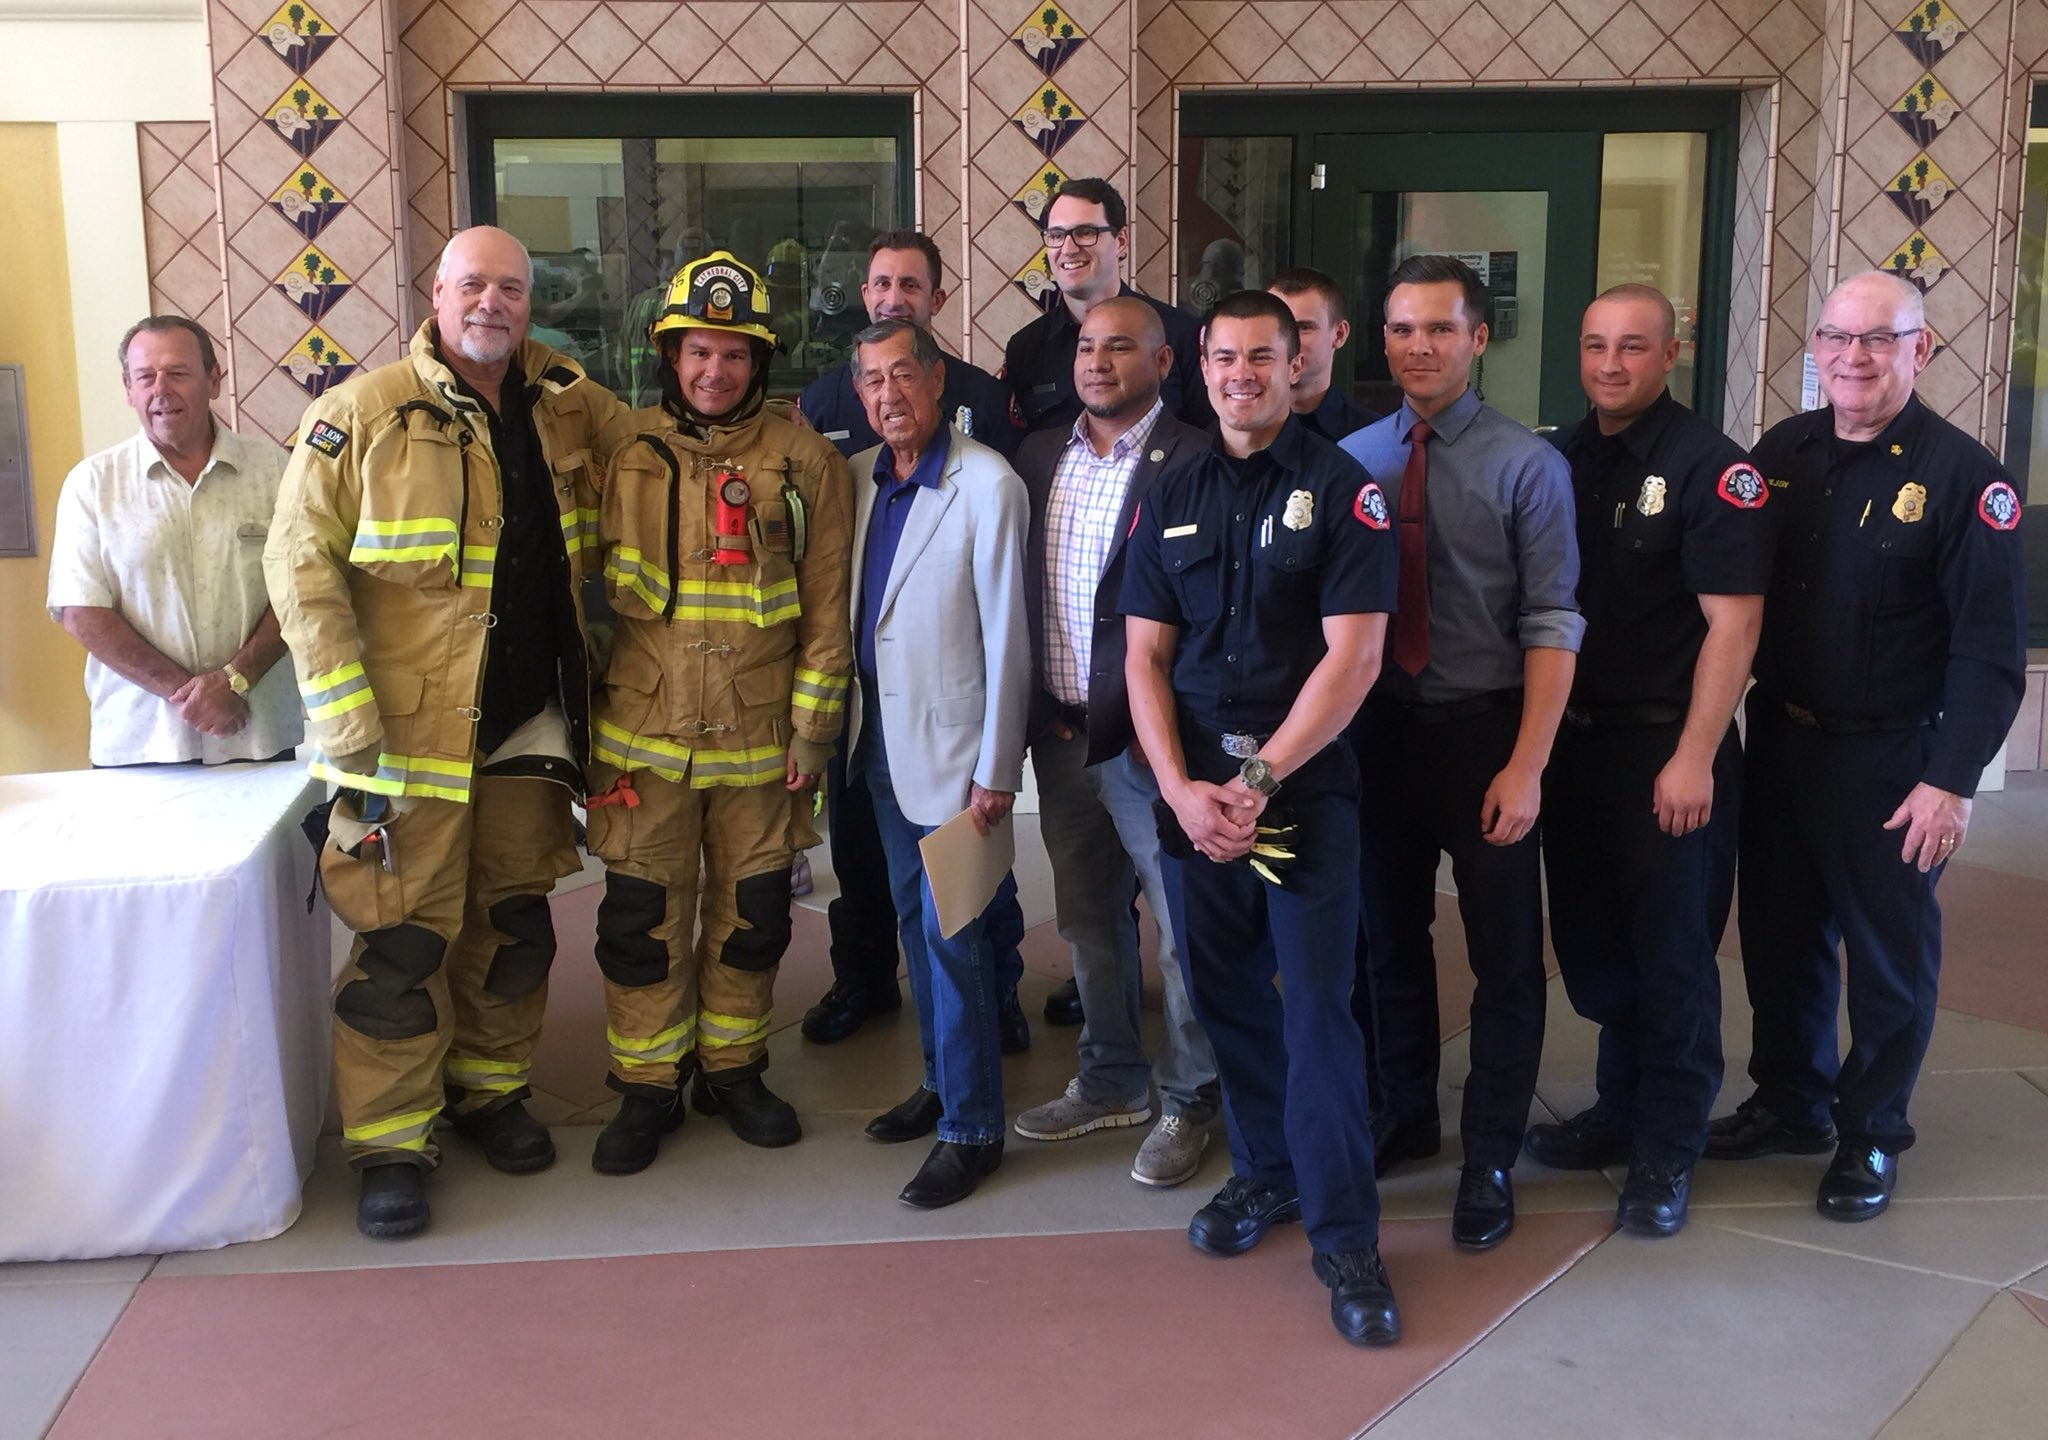 Agua Caliente Band donates $25,000 in gear to local fire department